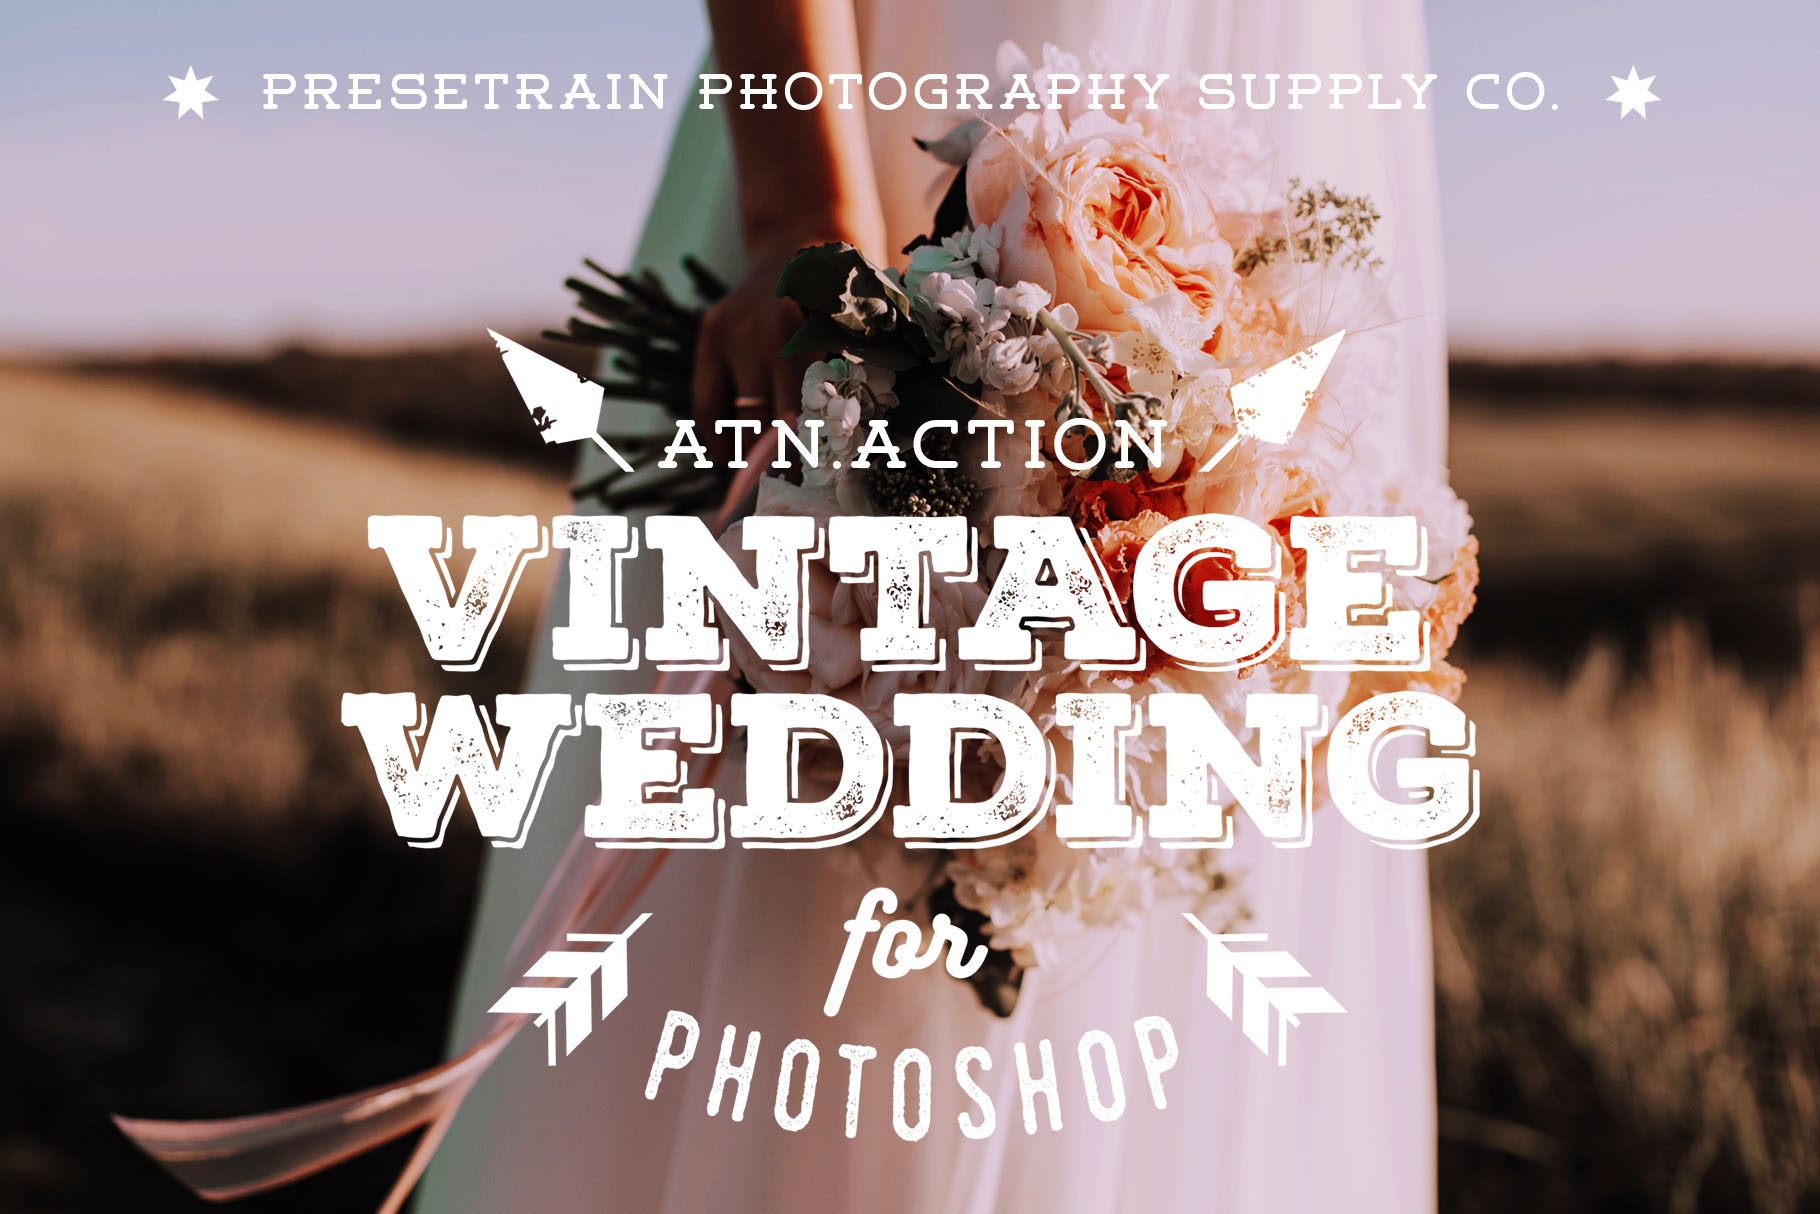 Vintage Wedding Action for Photoshop by